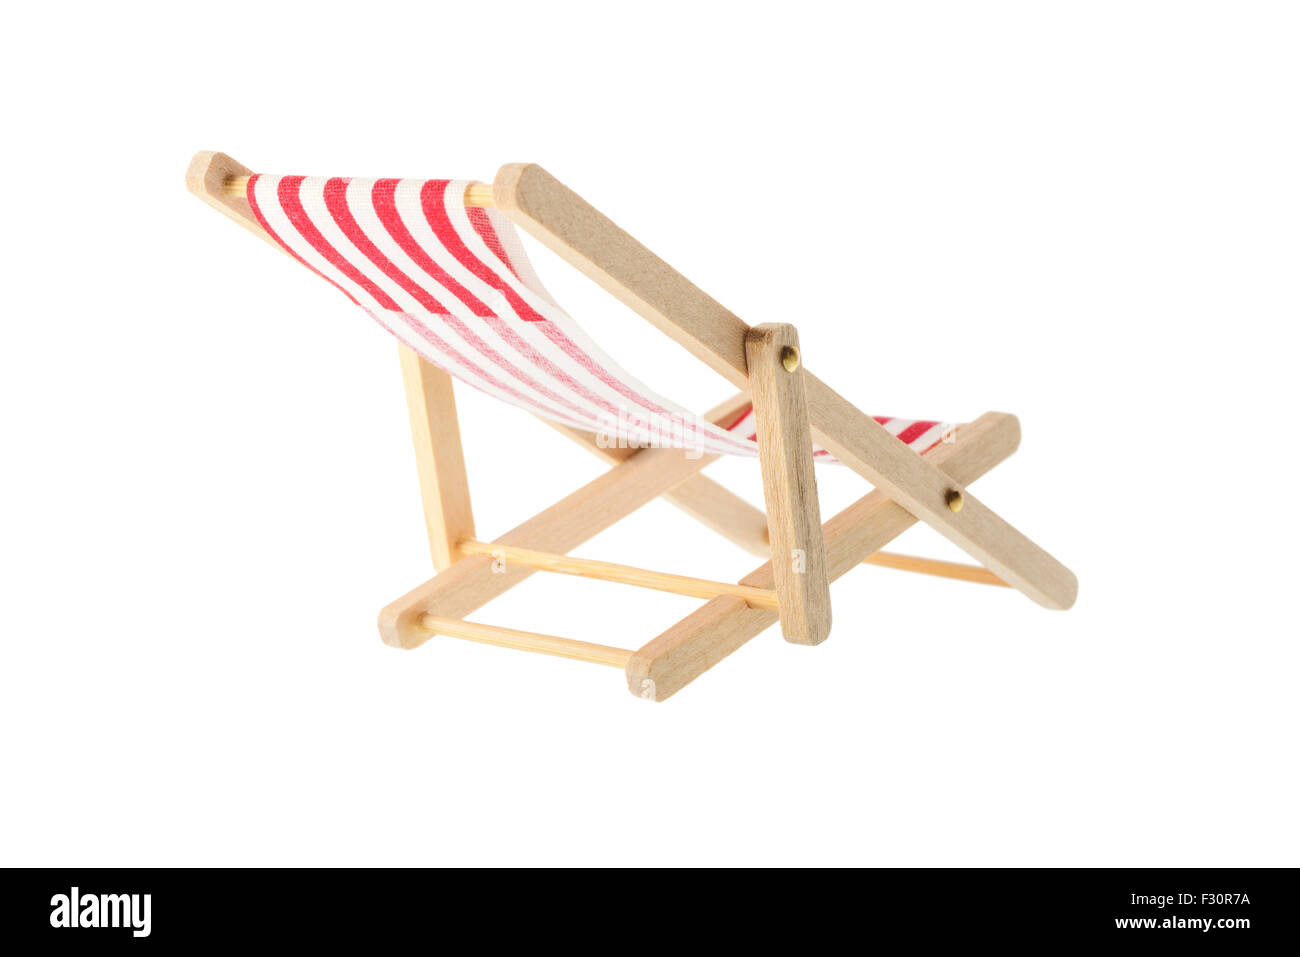 Isolated objects: wooden red striped deck chair, isolated on white background - Stock Image